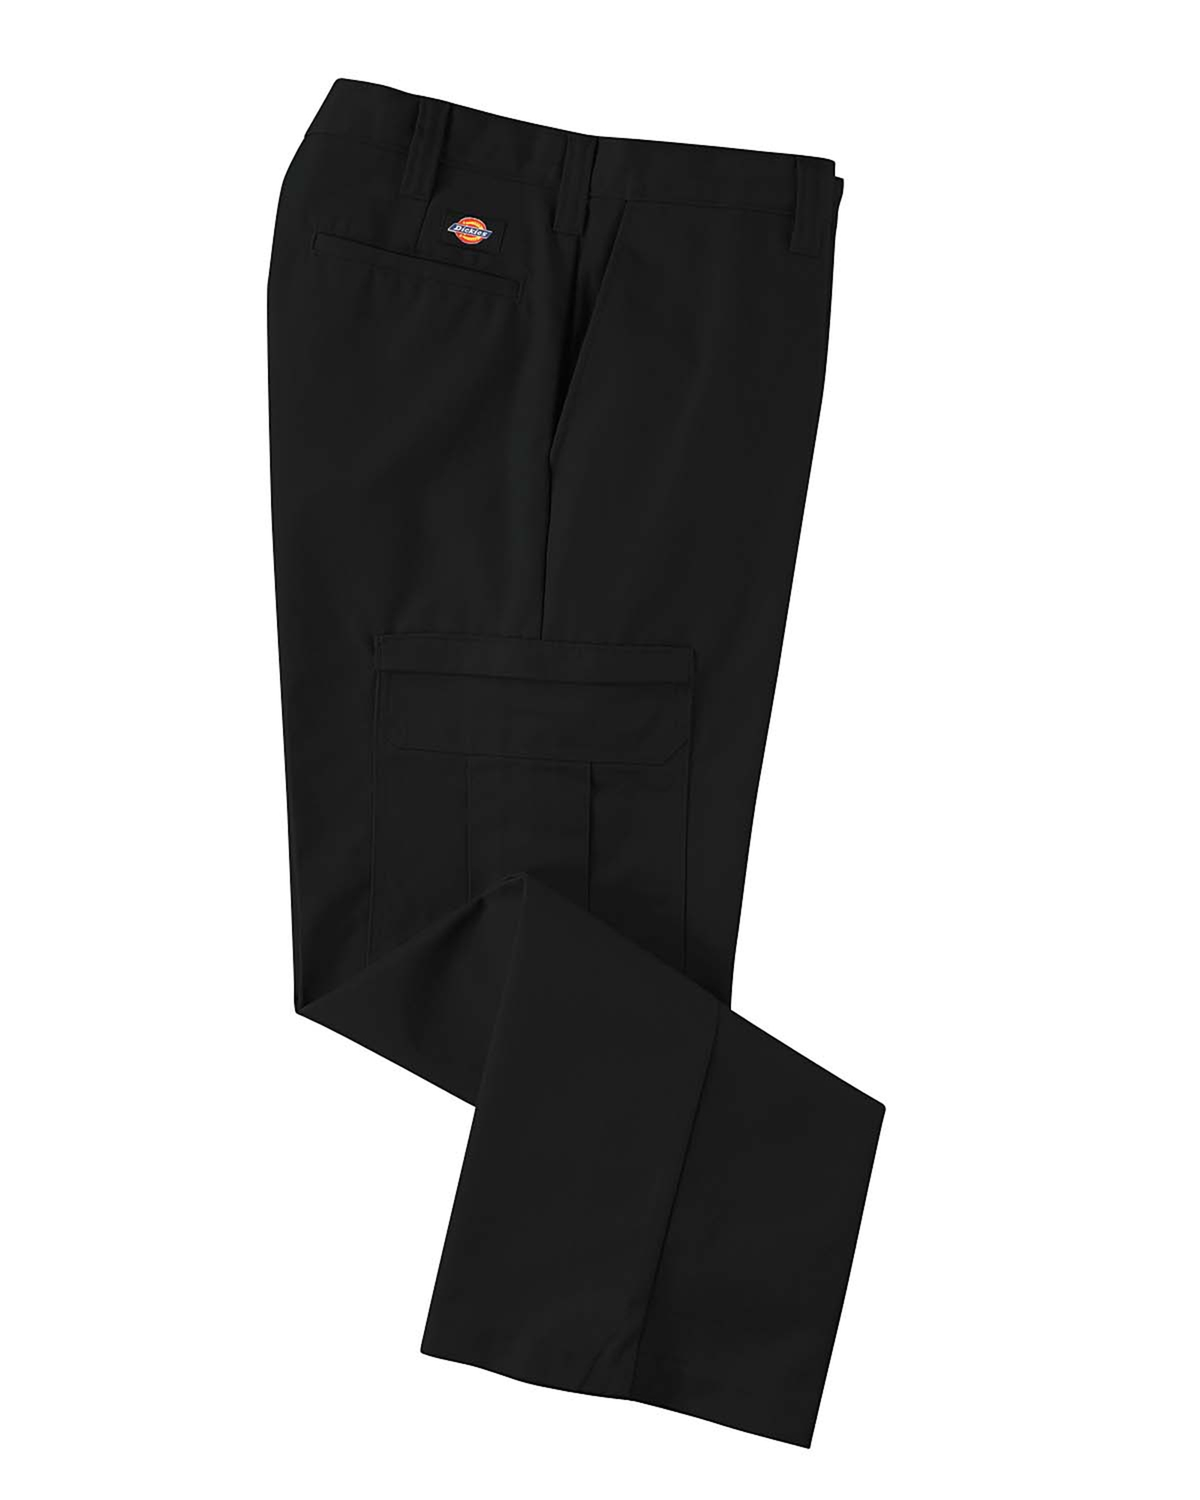 Dickies - 2112372 Men's 7.75 oz. Premium Industrial Cargo Pant